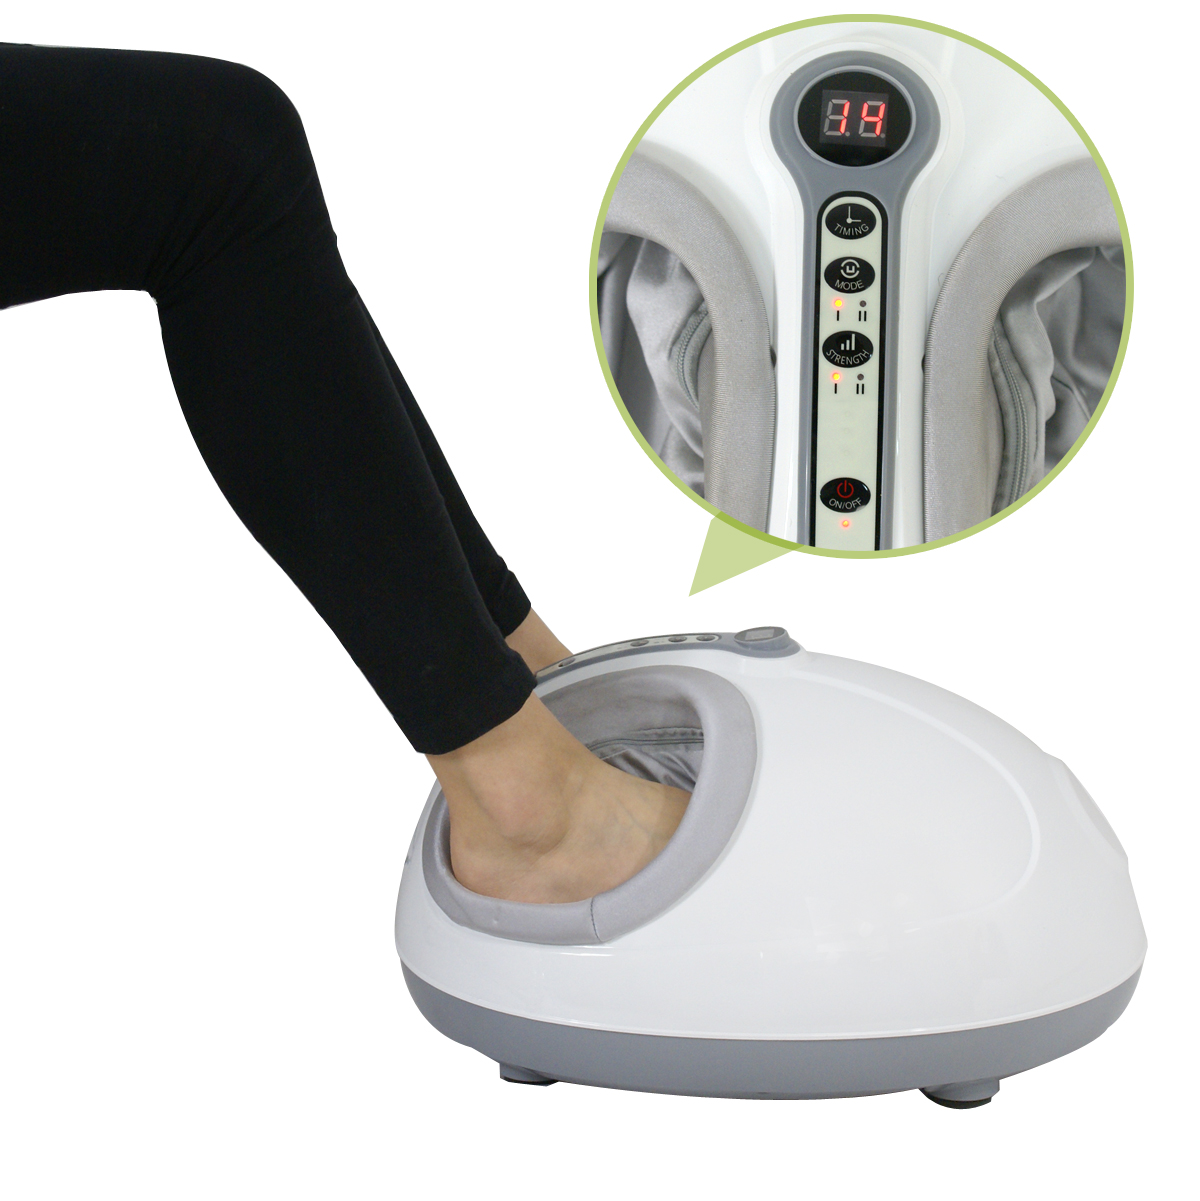 Zeny Electric Foot Massager Shiatsu Kneading Rolling Vibration LED Display Air Pressure Relax 110v